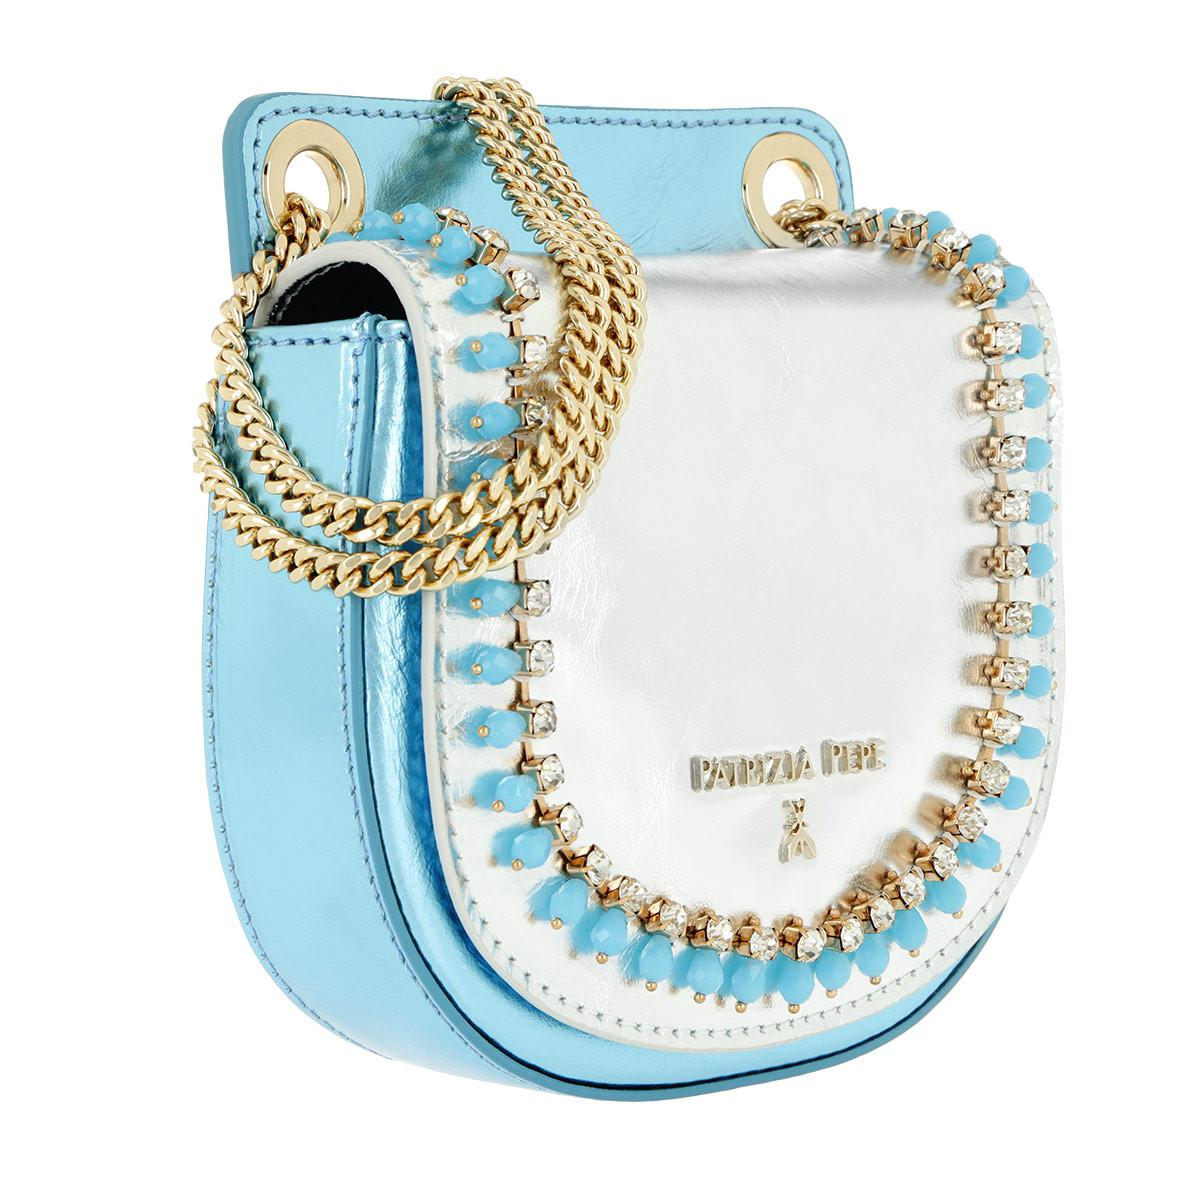 aab2672afd Patrizia Pepe Mini Crossbody Bag Leather Light Sky in Blue - Lyst